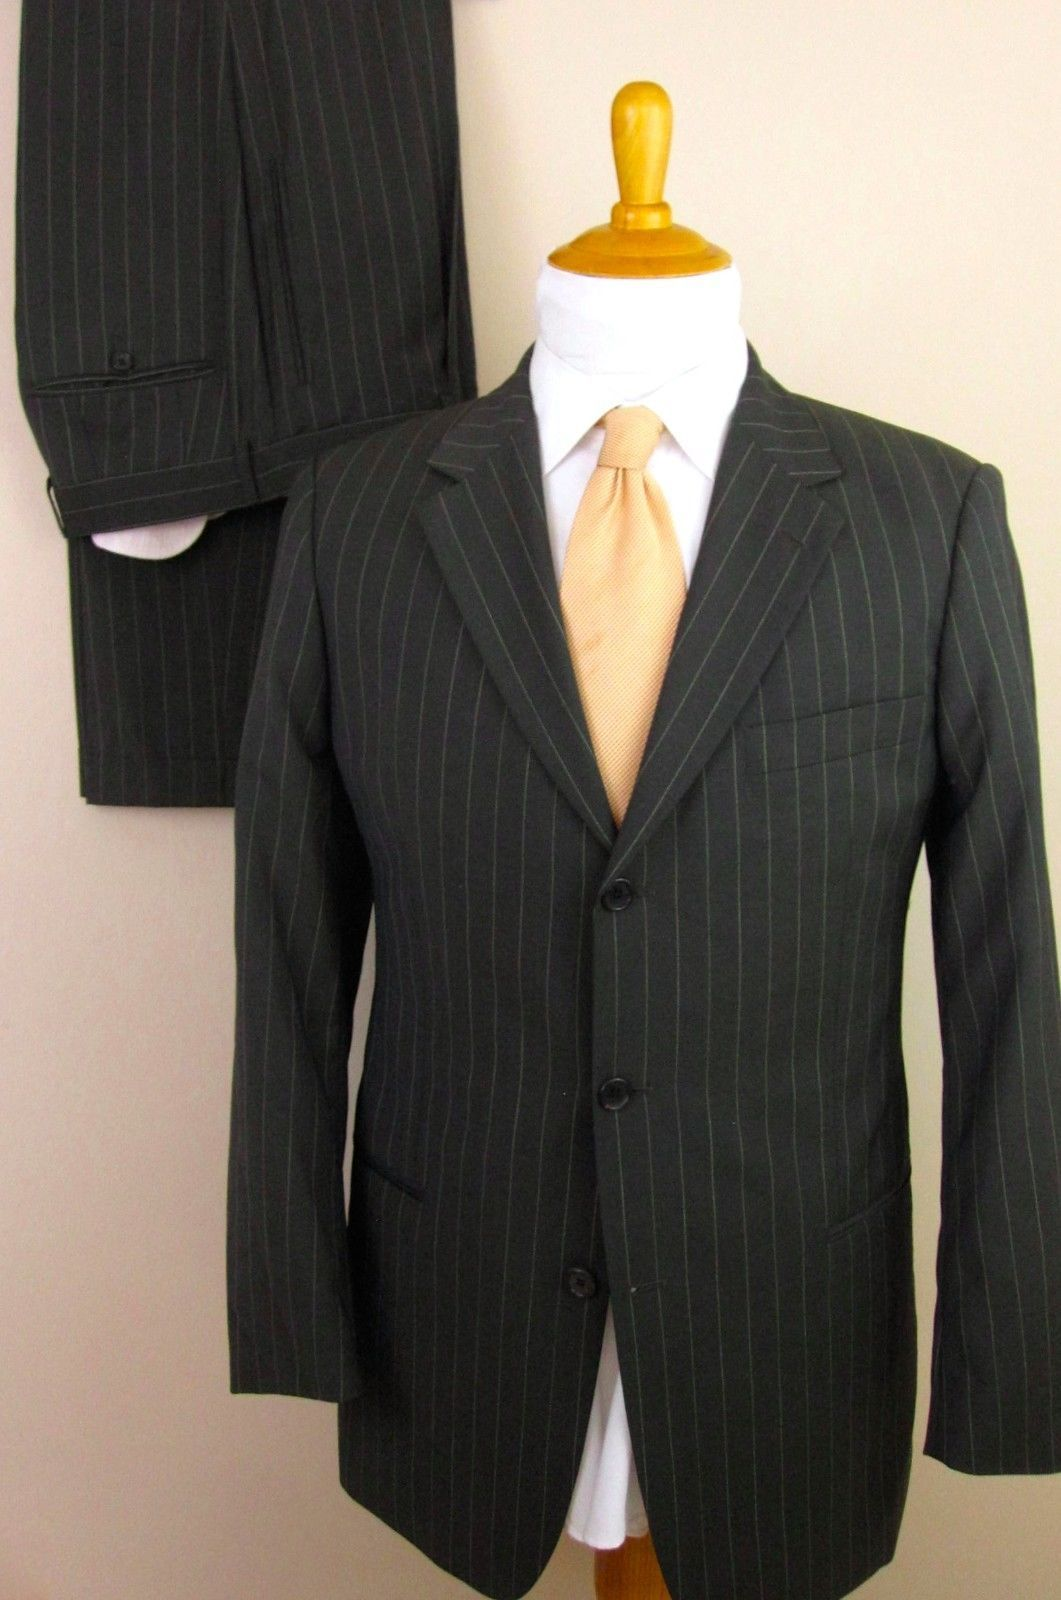 4856537c2 Hugo Boss Suit 36R Gray Pinstripe 3 Buttons and 49 similar items. S l1600